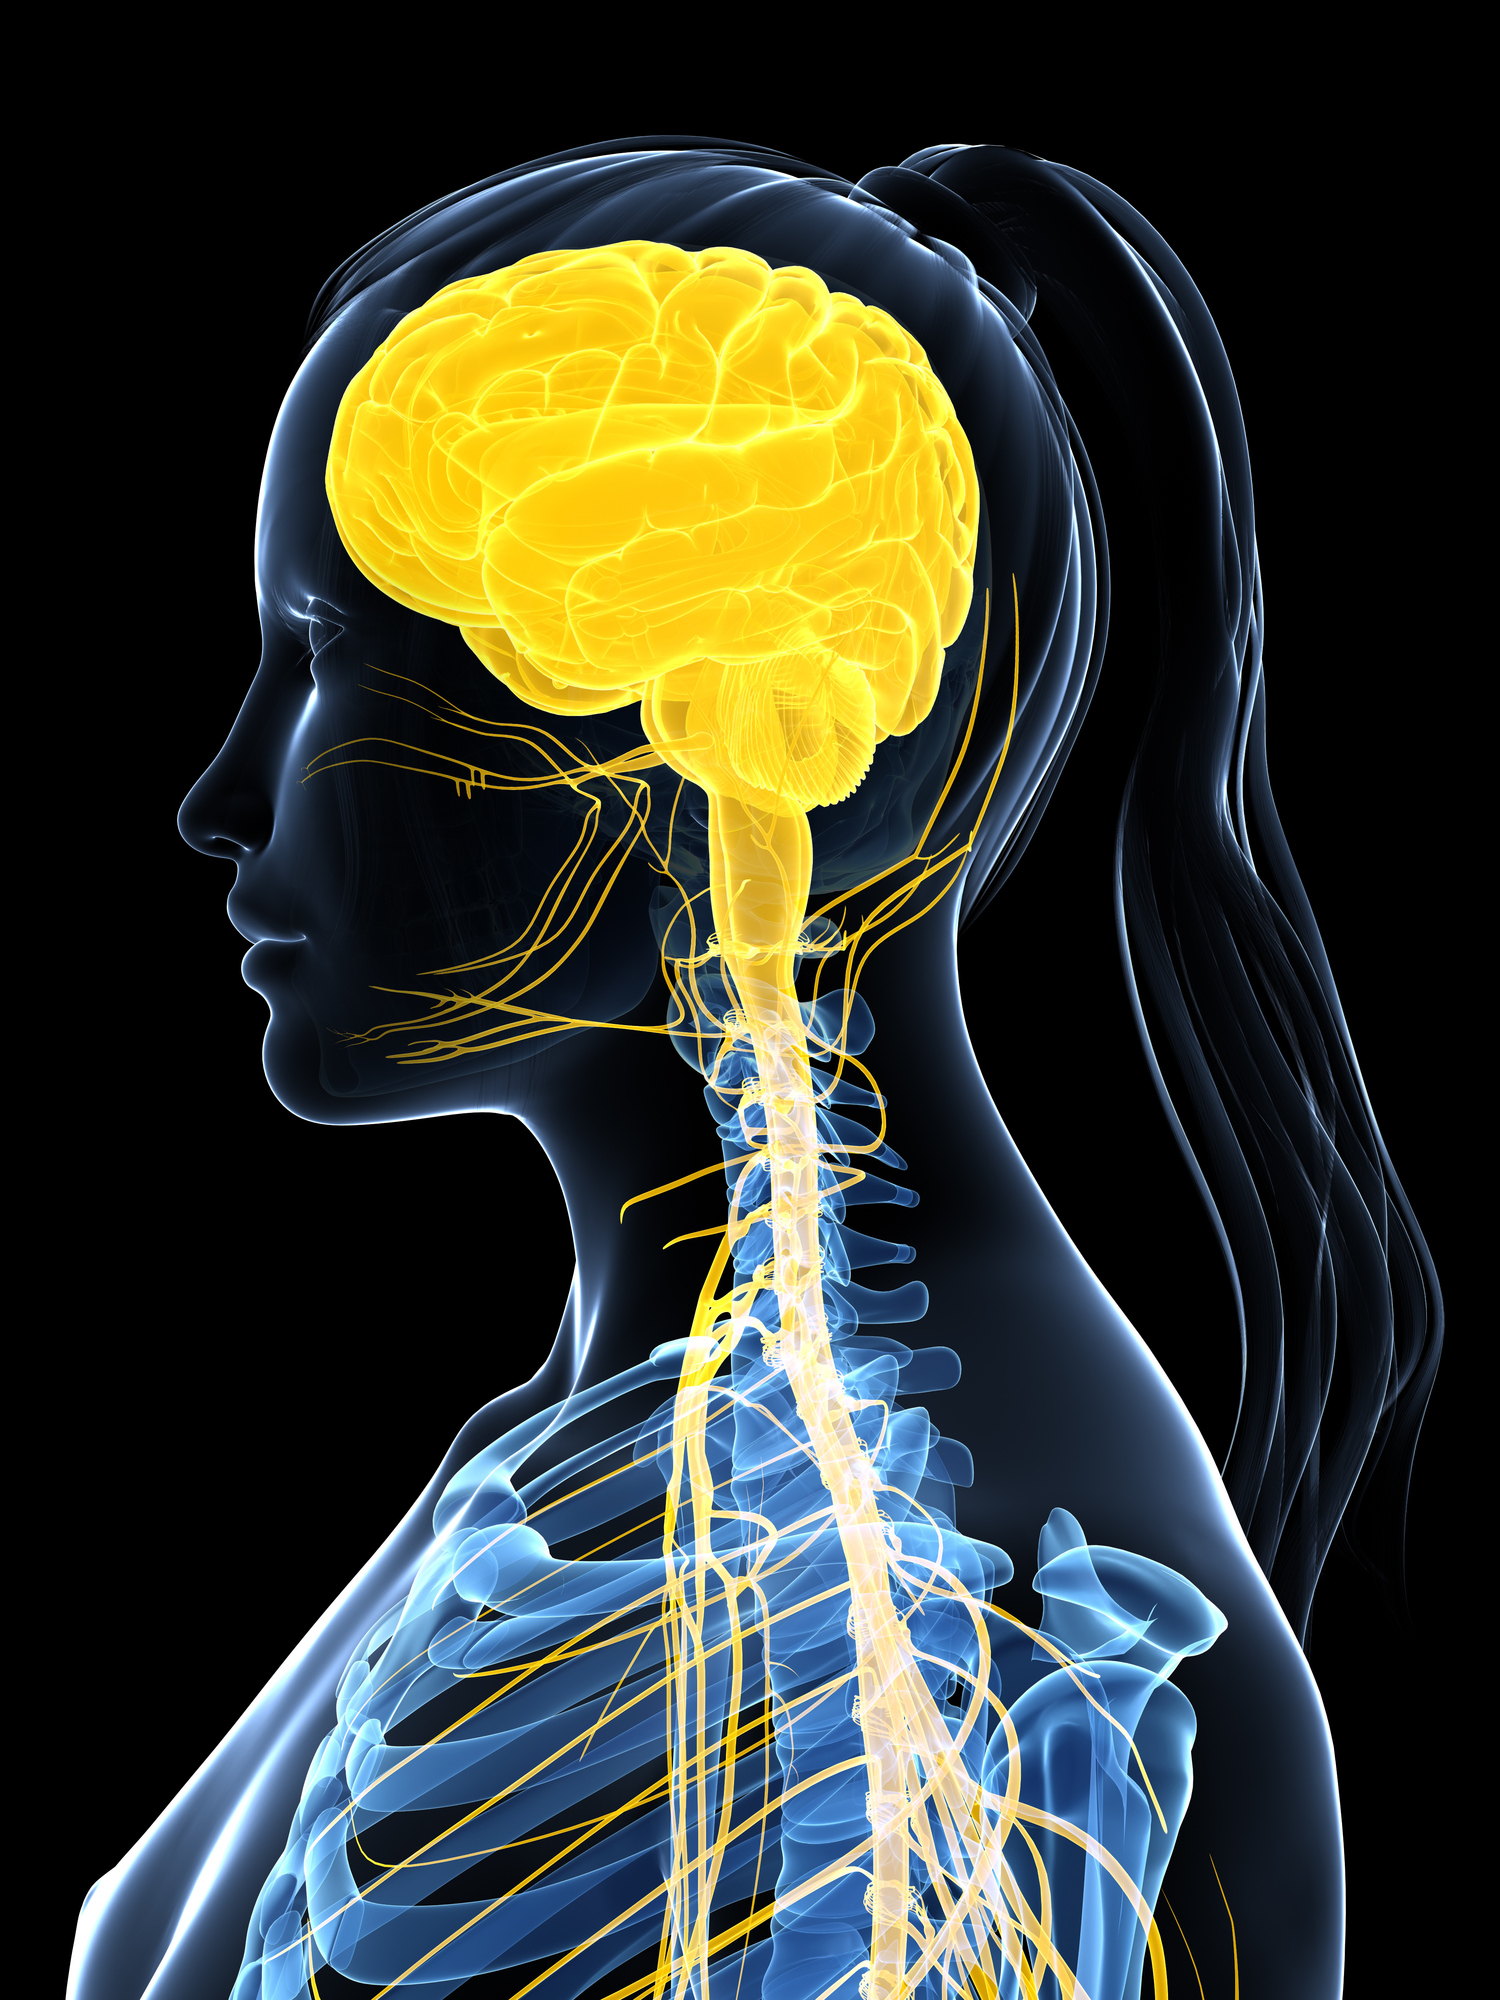 The nervous system controls how comfortable we feel at public speaking